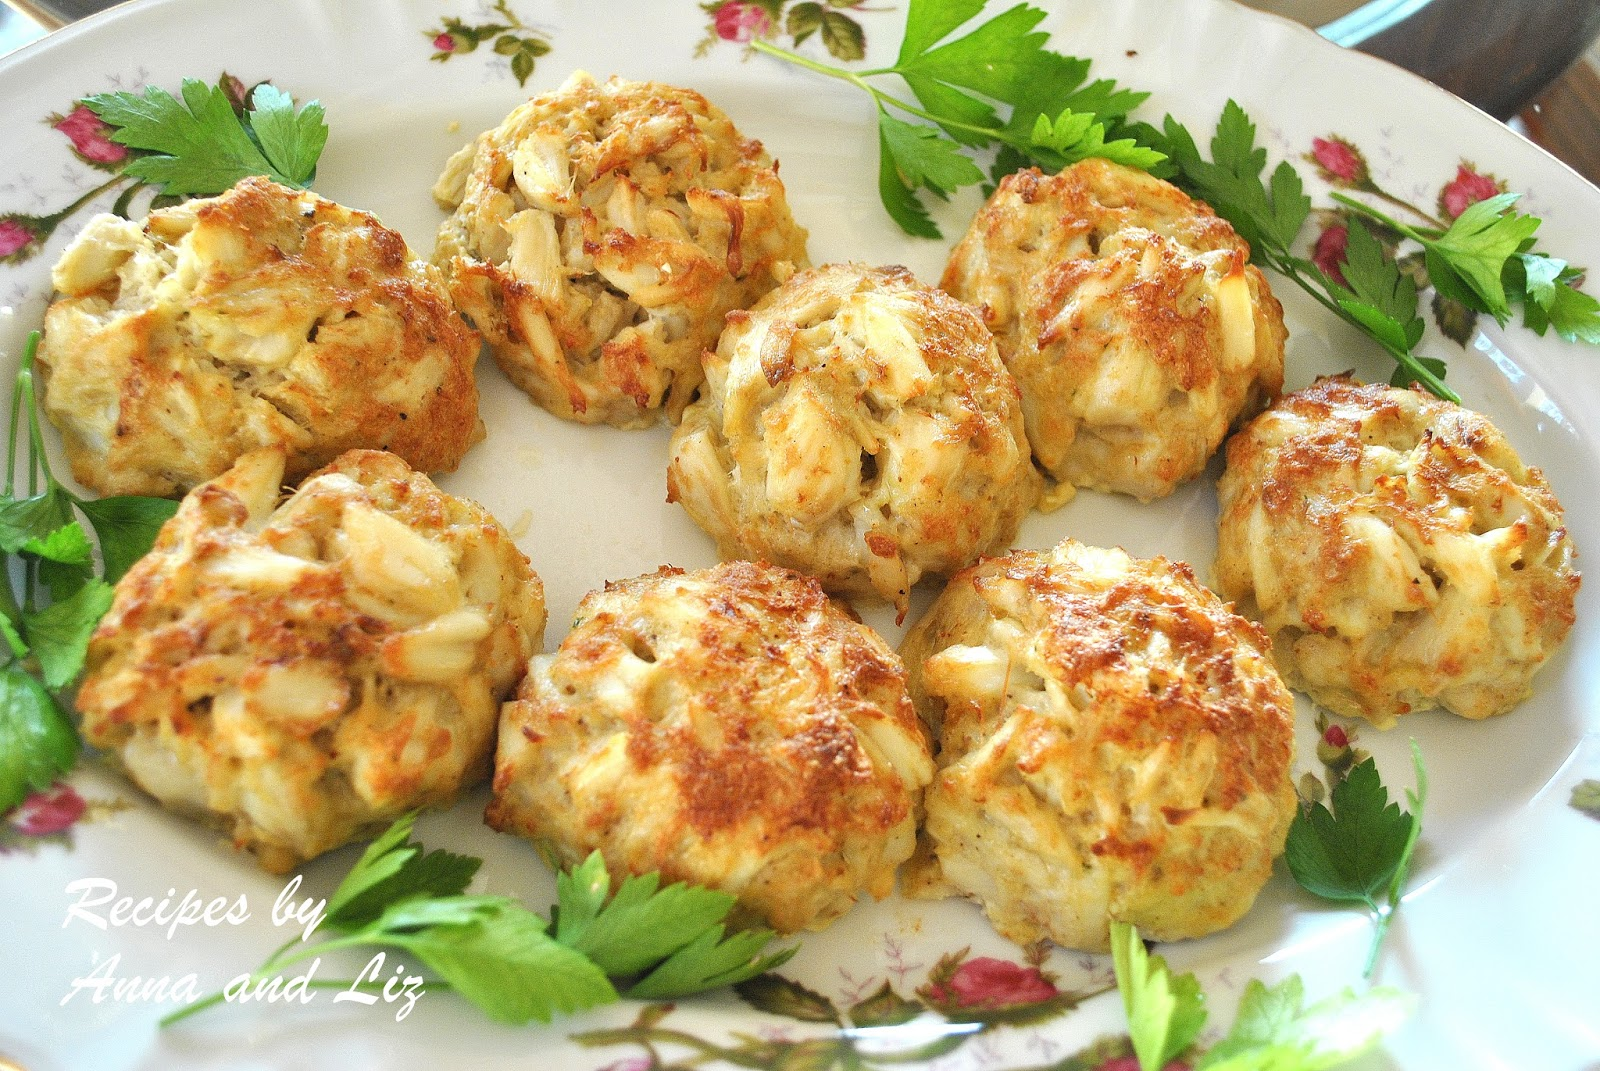 What Is A Good Side To Serve With Crab Cakes